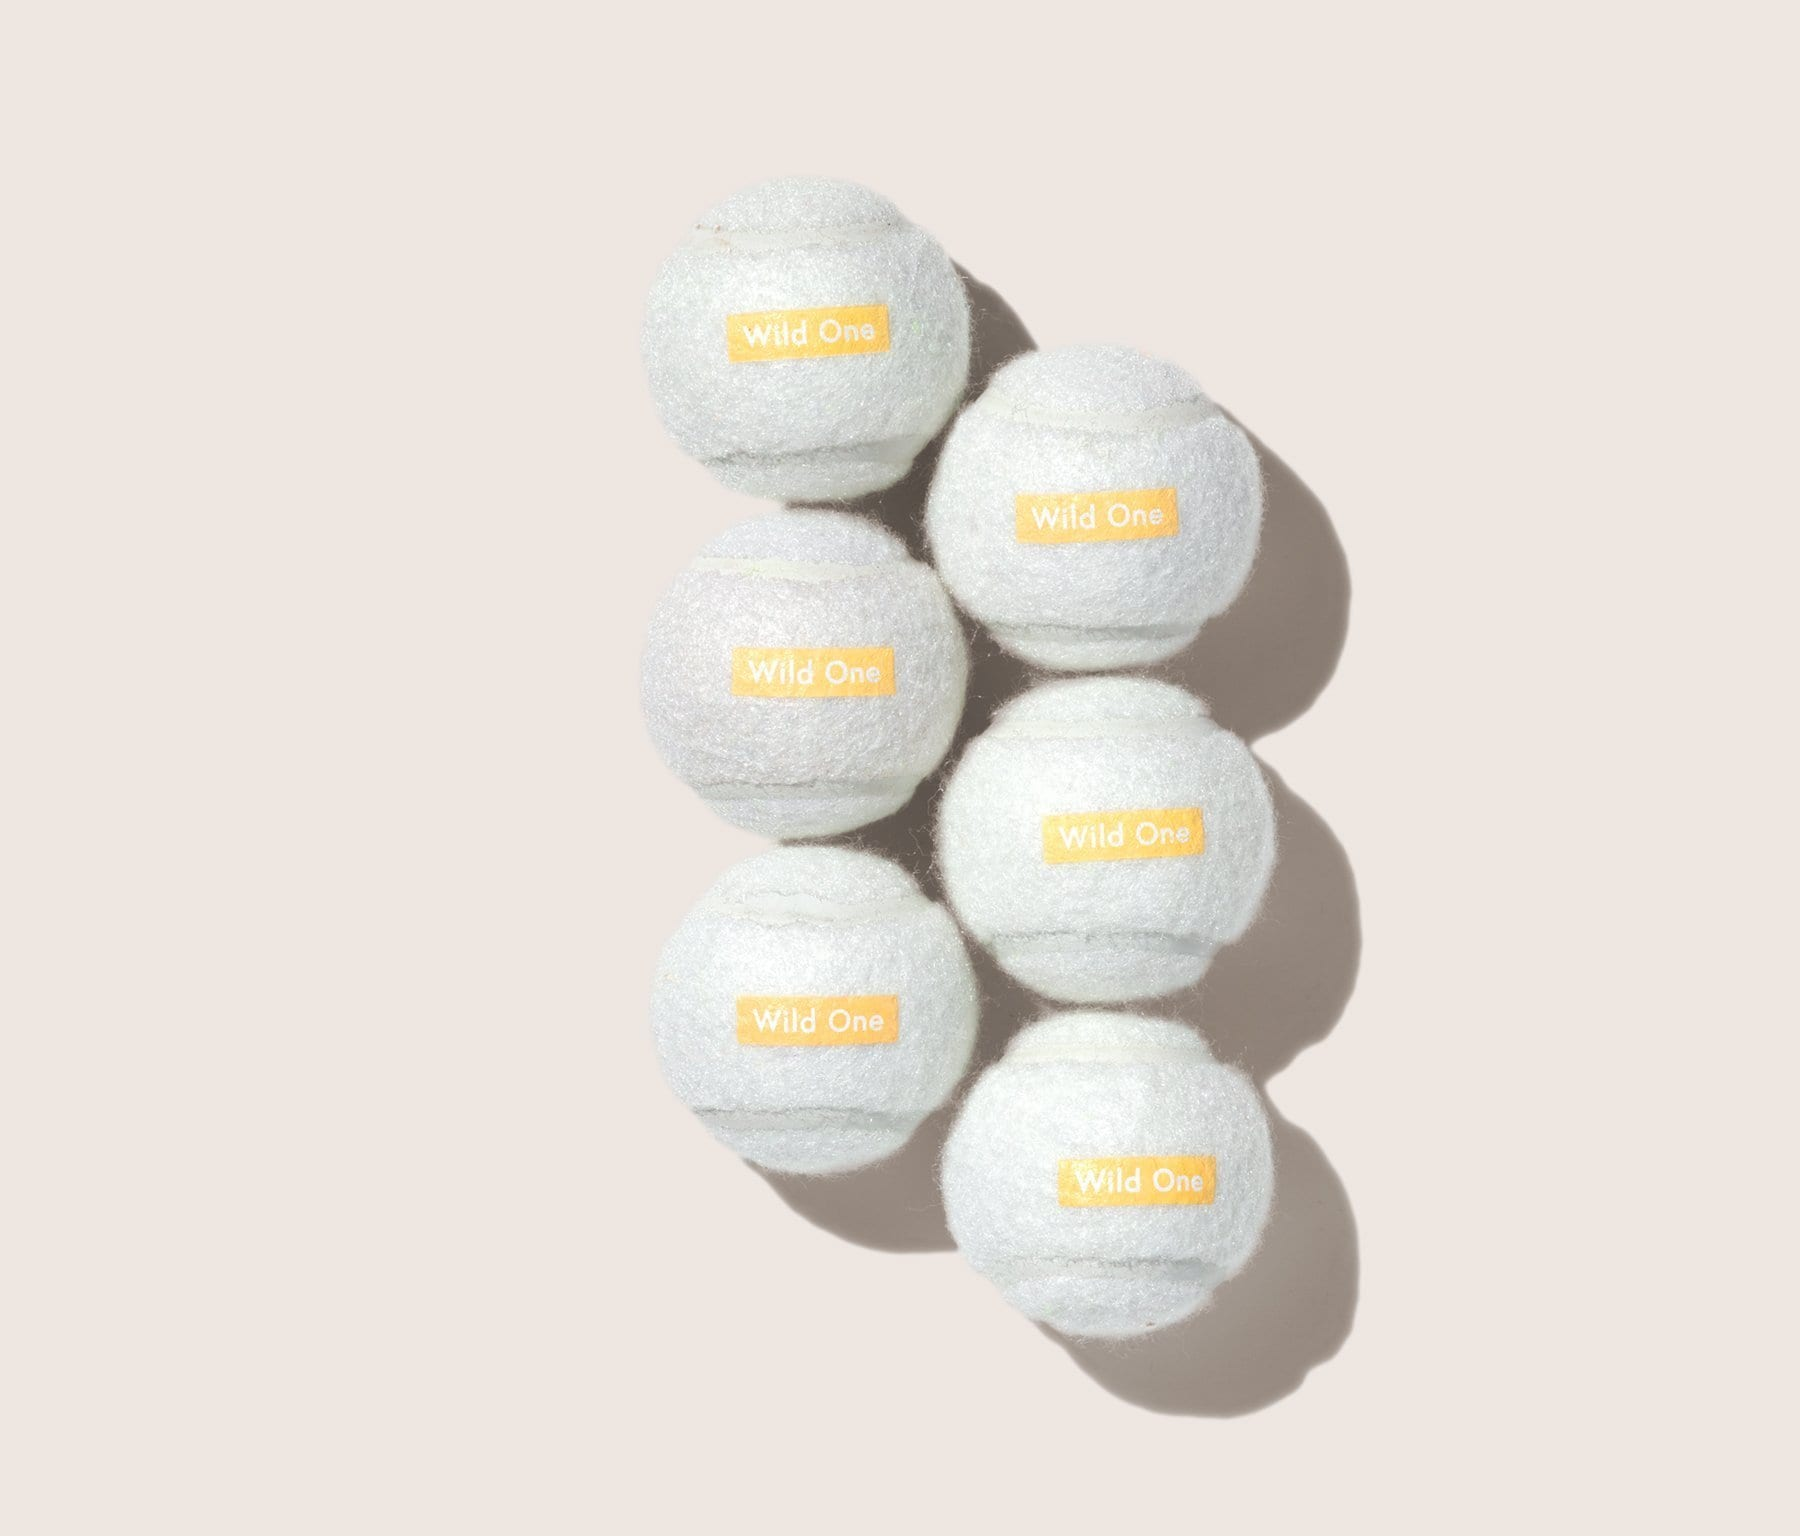 Tennis Balls / Neighborhood Goods